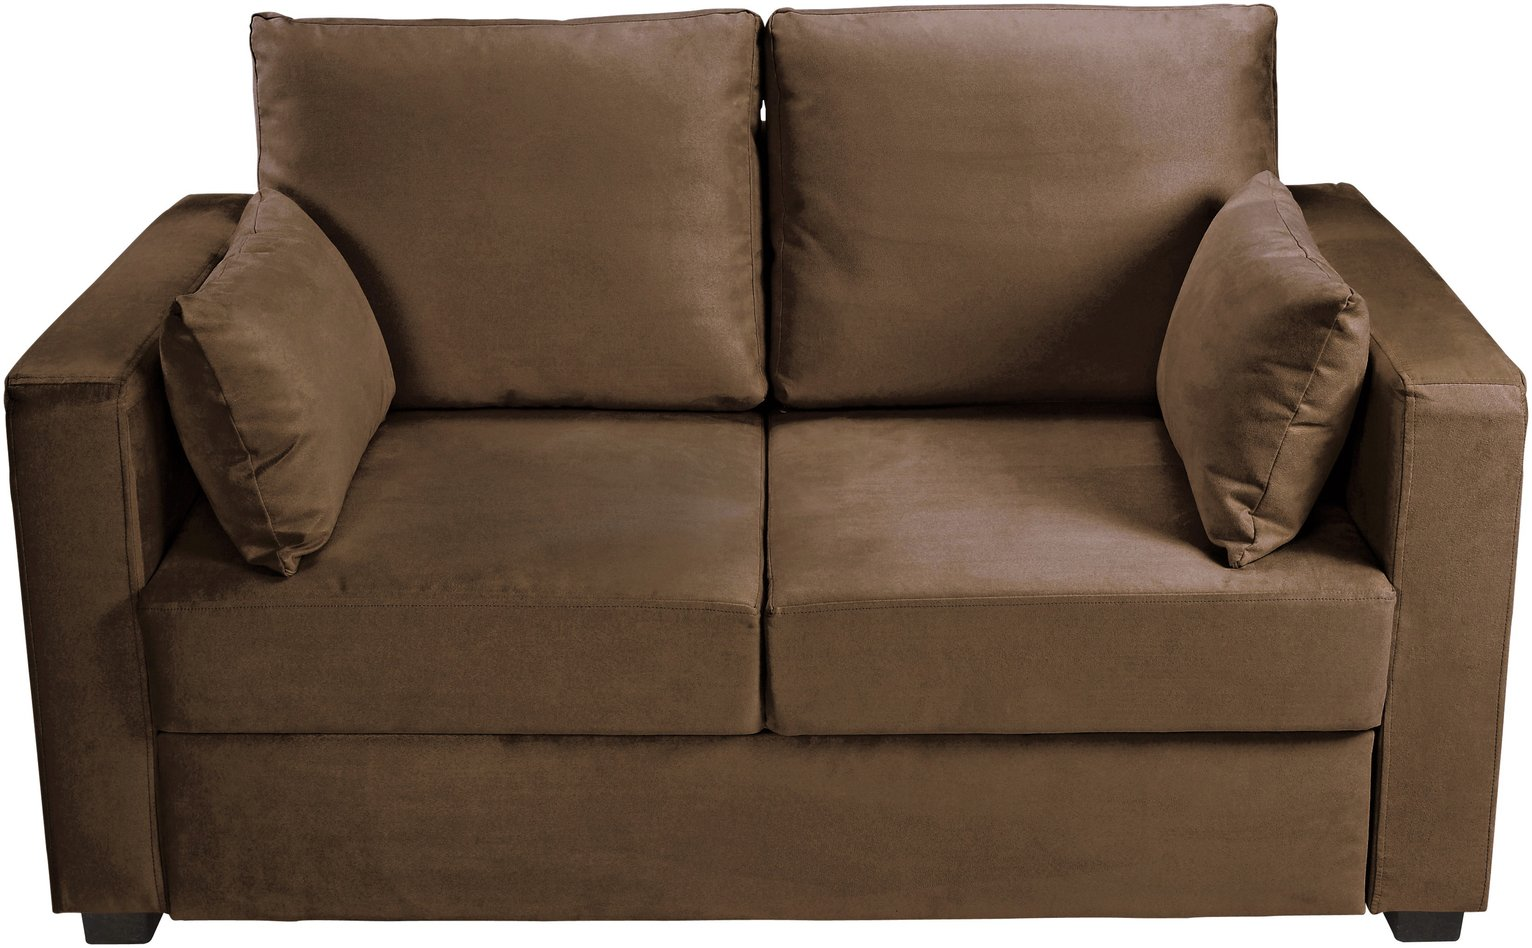 Image of Home - Apartment - 2 Seater Fabric - Sofa Bed - Chocolate